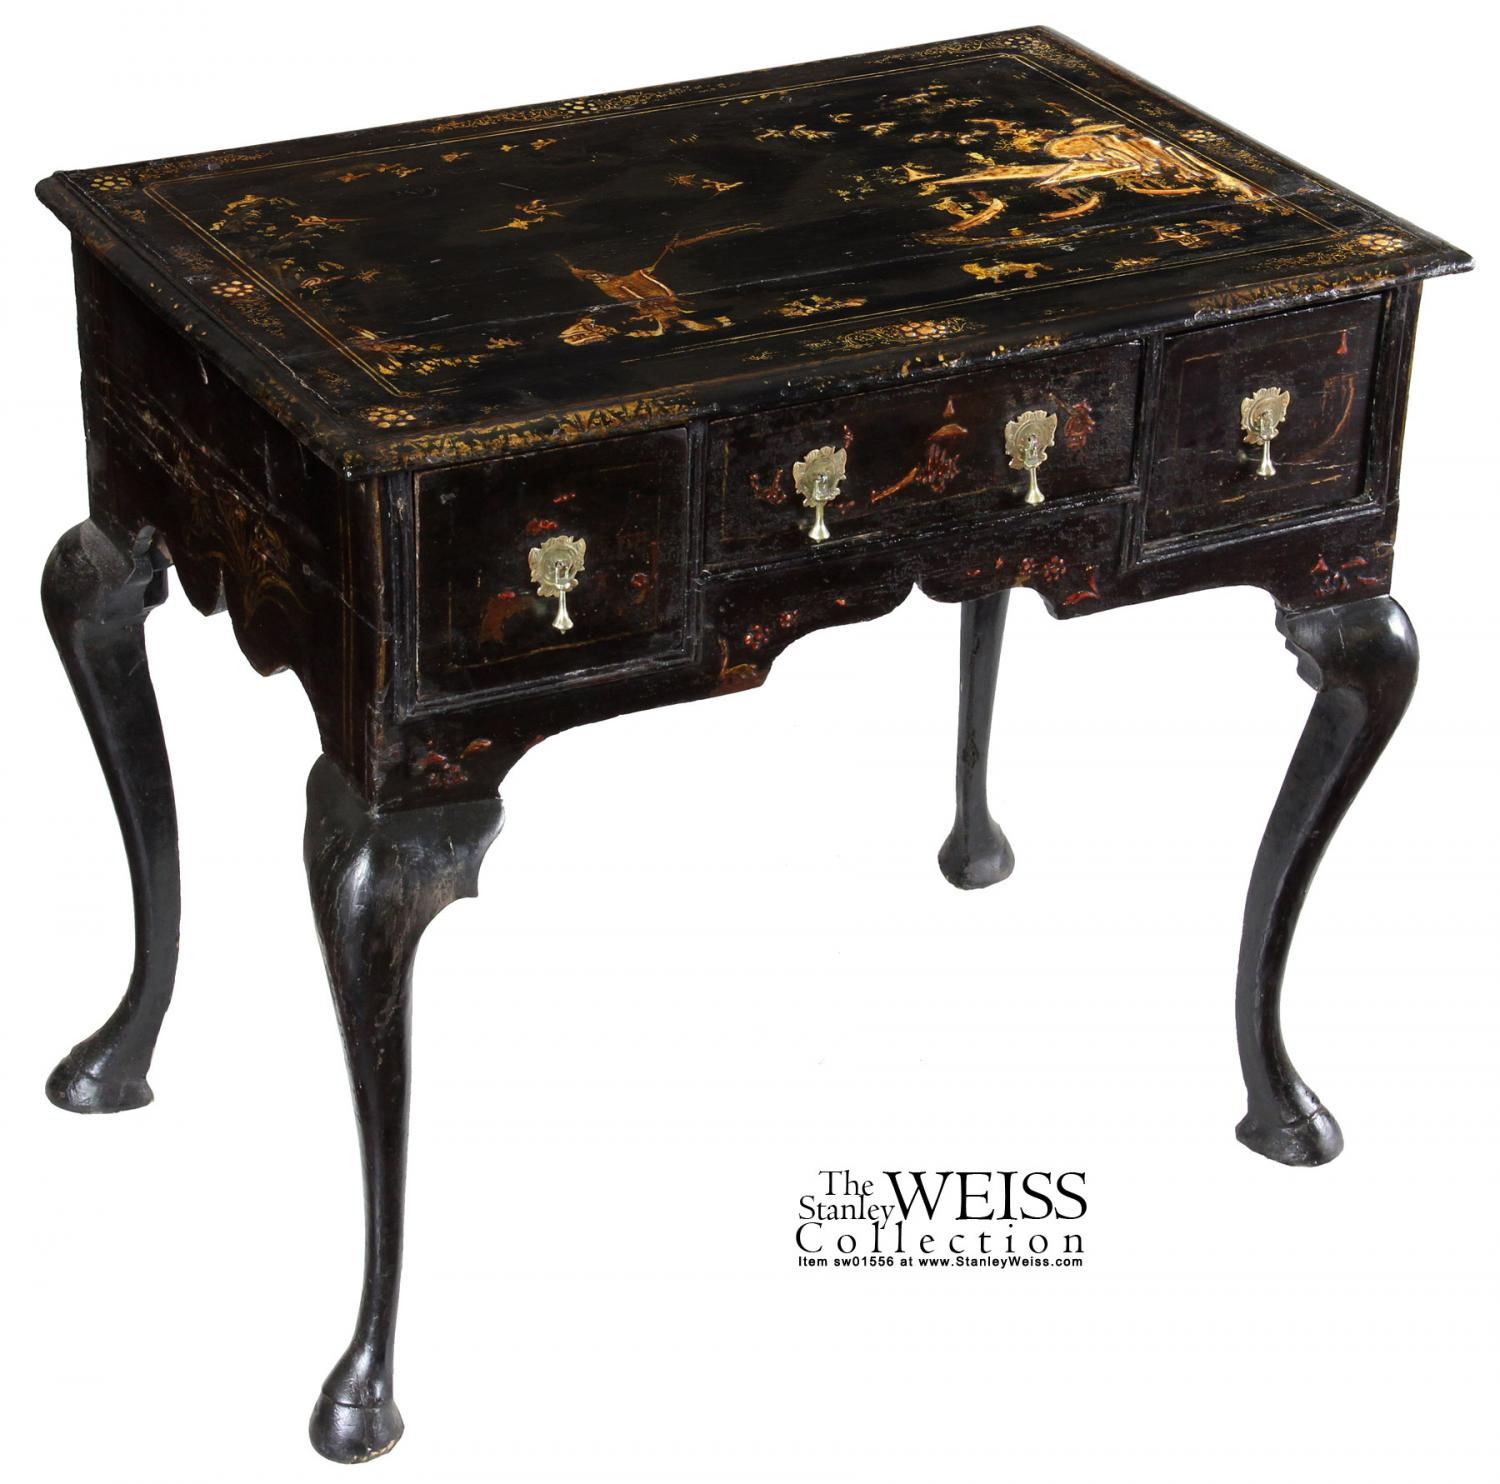 A Black Lacquer Queen Anne Japanned/Chinoiserie Dressing Table, England,  C.1750